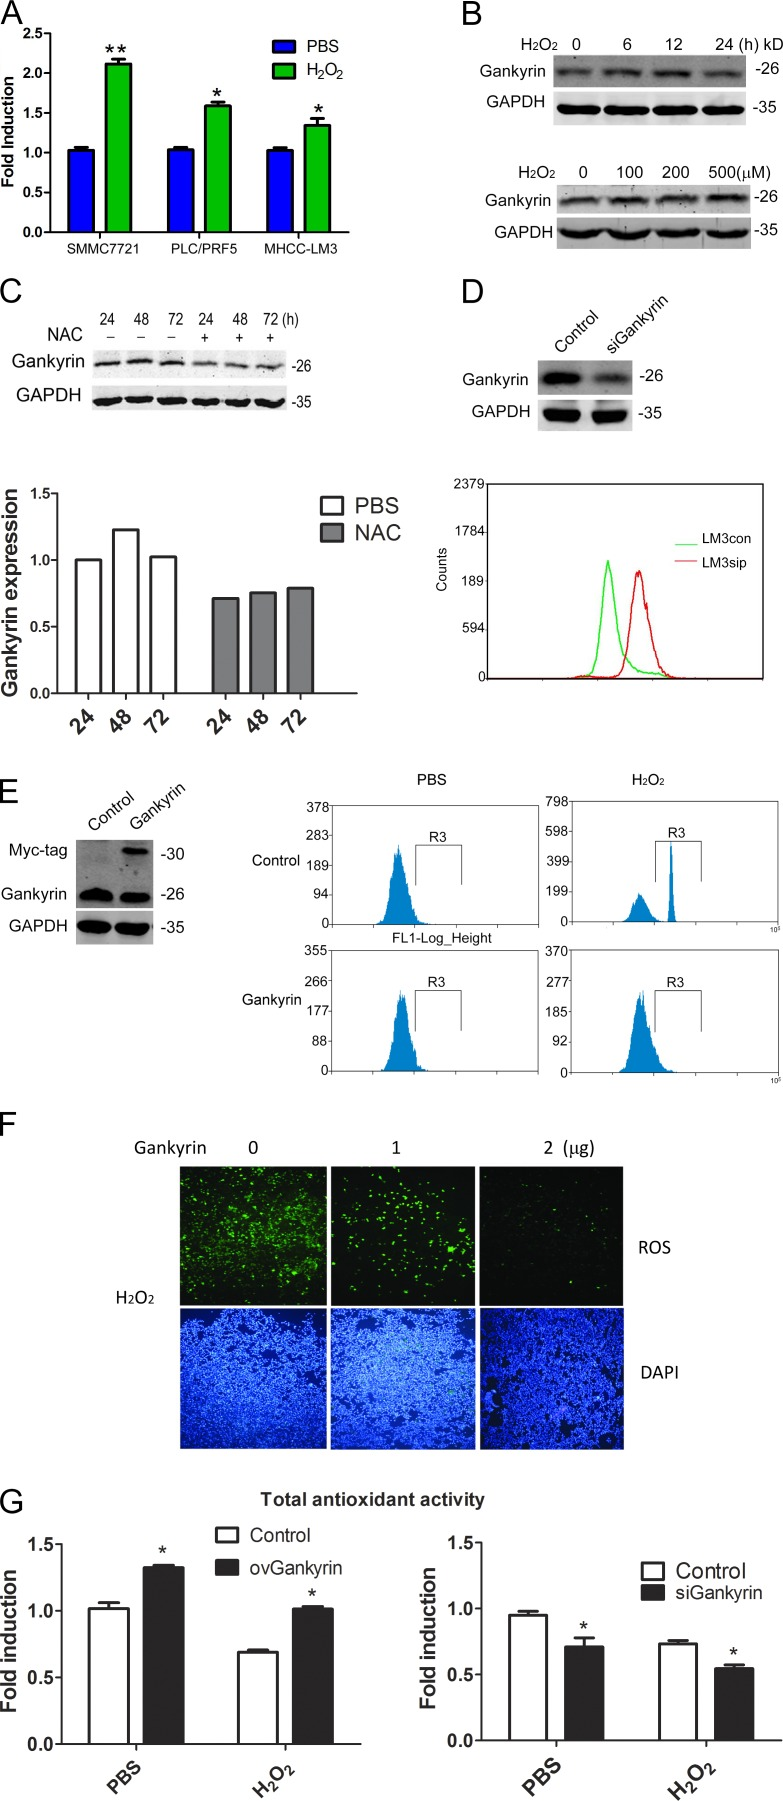 Gankyrin expression is increased under oxidative stress and participated in elimination of ROS . (A) qRT-PCR analysis of gankyrin expression in SMMC7721, PLC/PRF/5, and MHCCLM3 cells. The data are the mean ± SEM of three independent experiments. (B) Western blot analysis of gankyrin expression at different time points or after different concentrations of H 2 O 2 treatment in MHCCLM3 cells. (C) Western blot of gankyrin expression in MHCC-LM3 cells treated with 100 nM NAC for 24 to 72 h; the protein levels were quantified relative to the loading control. (D) ROS levels were detected in MHCCLM3 gankyrin knockdown and control cells. Cells were treated with PBS or 0.5 mM of H 2 O 2 for 5 h, and the cells were then incubated with CM-H2DCFDA for 30 min. (E) Flow cytometry analysis to detect ROS levels in gankyrin-overexpressing and control SMMC7721 cells. (F) Fluorescence microscopy to detect ROS levels in SMMC7721 cells transiently transfected with gankyrin overexpressing plasmid. Bar, 100 µm. (G) Gankyrin regulated the total antioxidant capacity of HCC cells. SMMC7721 and MHCCLM3 cells with different gankyrin levels were treated with 0.5 mM H 2 O 2 or PBS for 5 h, and the total antioxidant capacity was then measured with a T-AOC Assay kit. The results are the means ± SEM of three independent experiments. Data in B–F are representative of at least three experiments with similar results.*, P